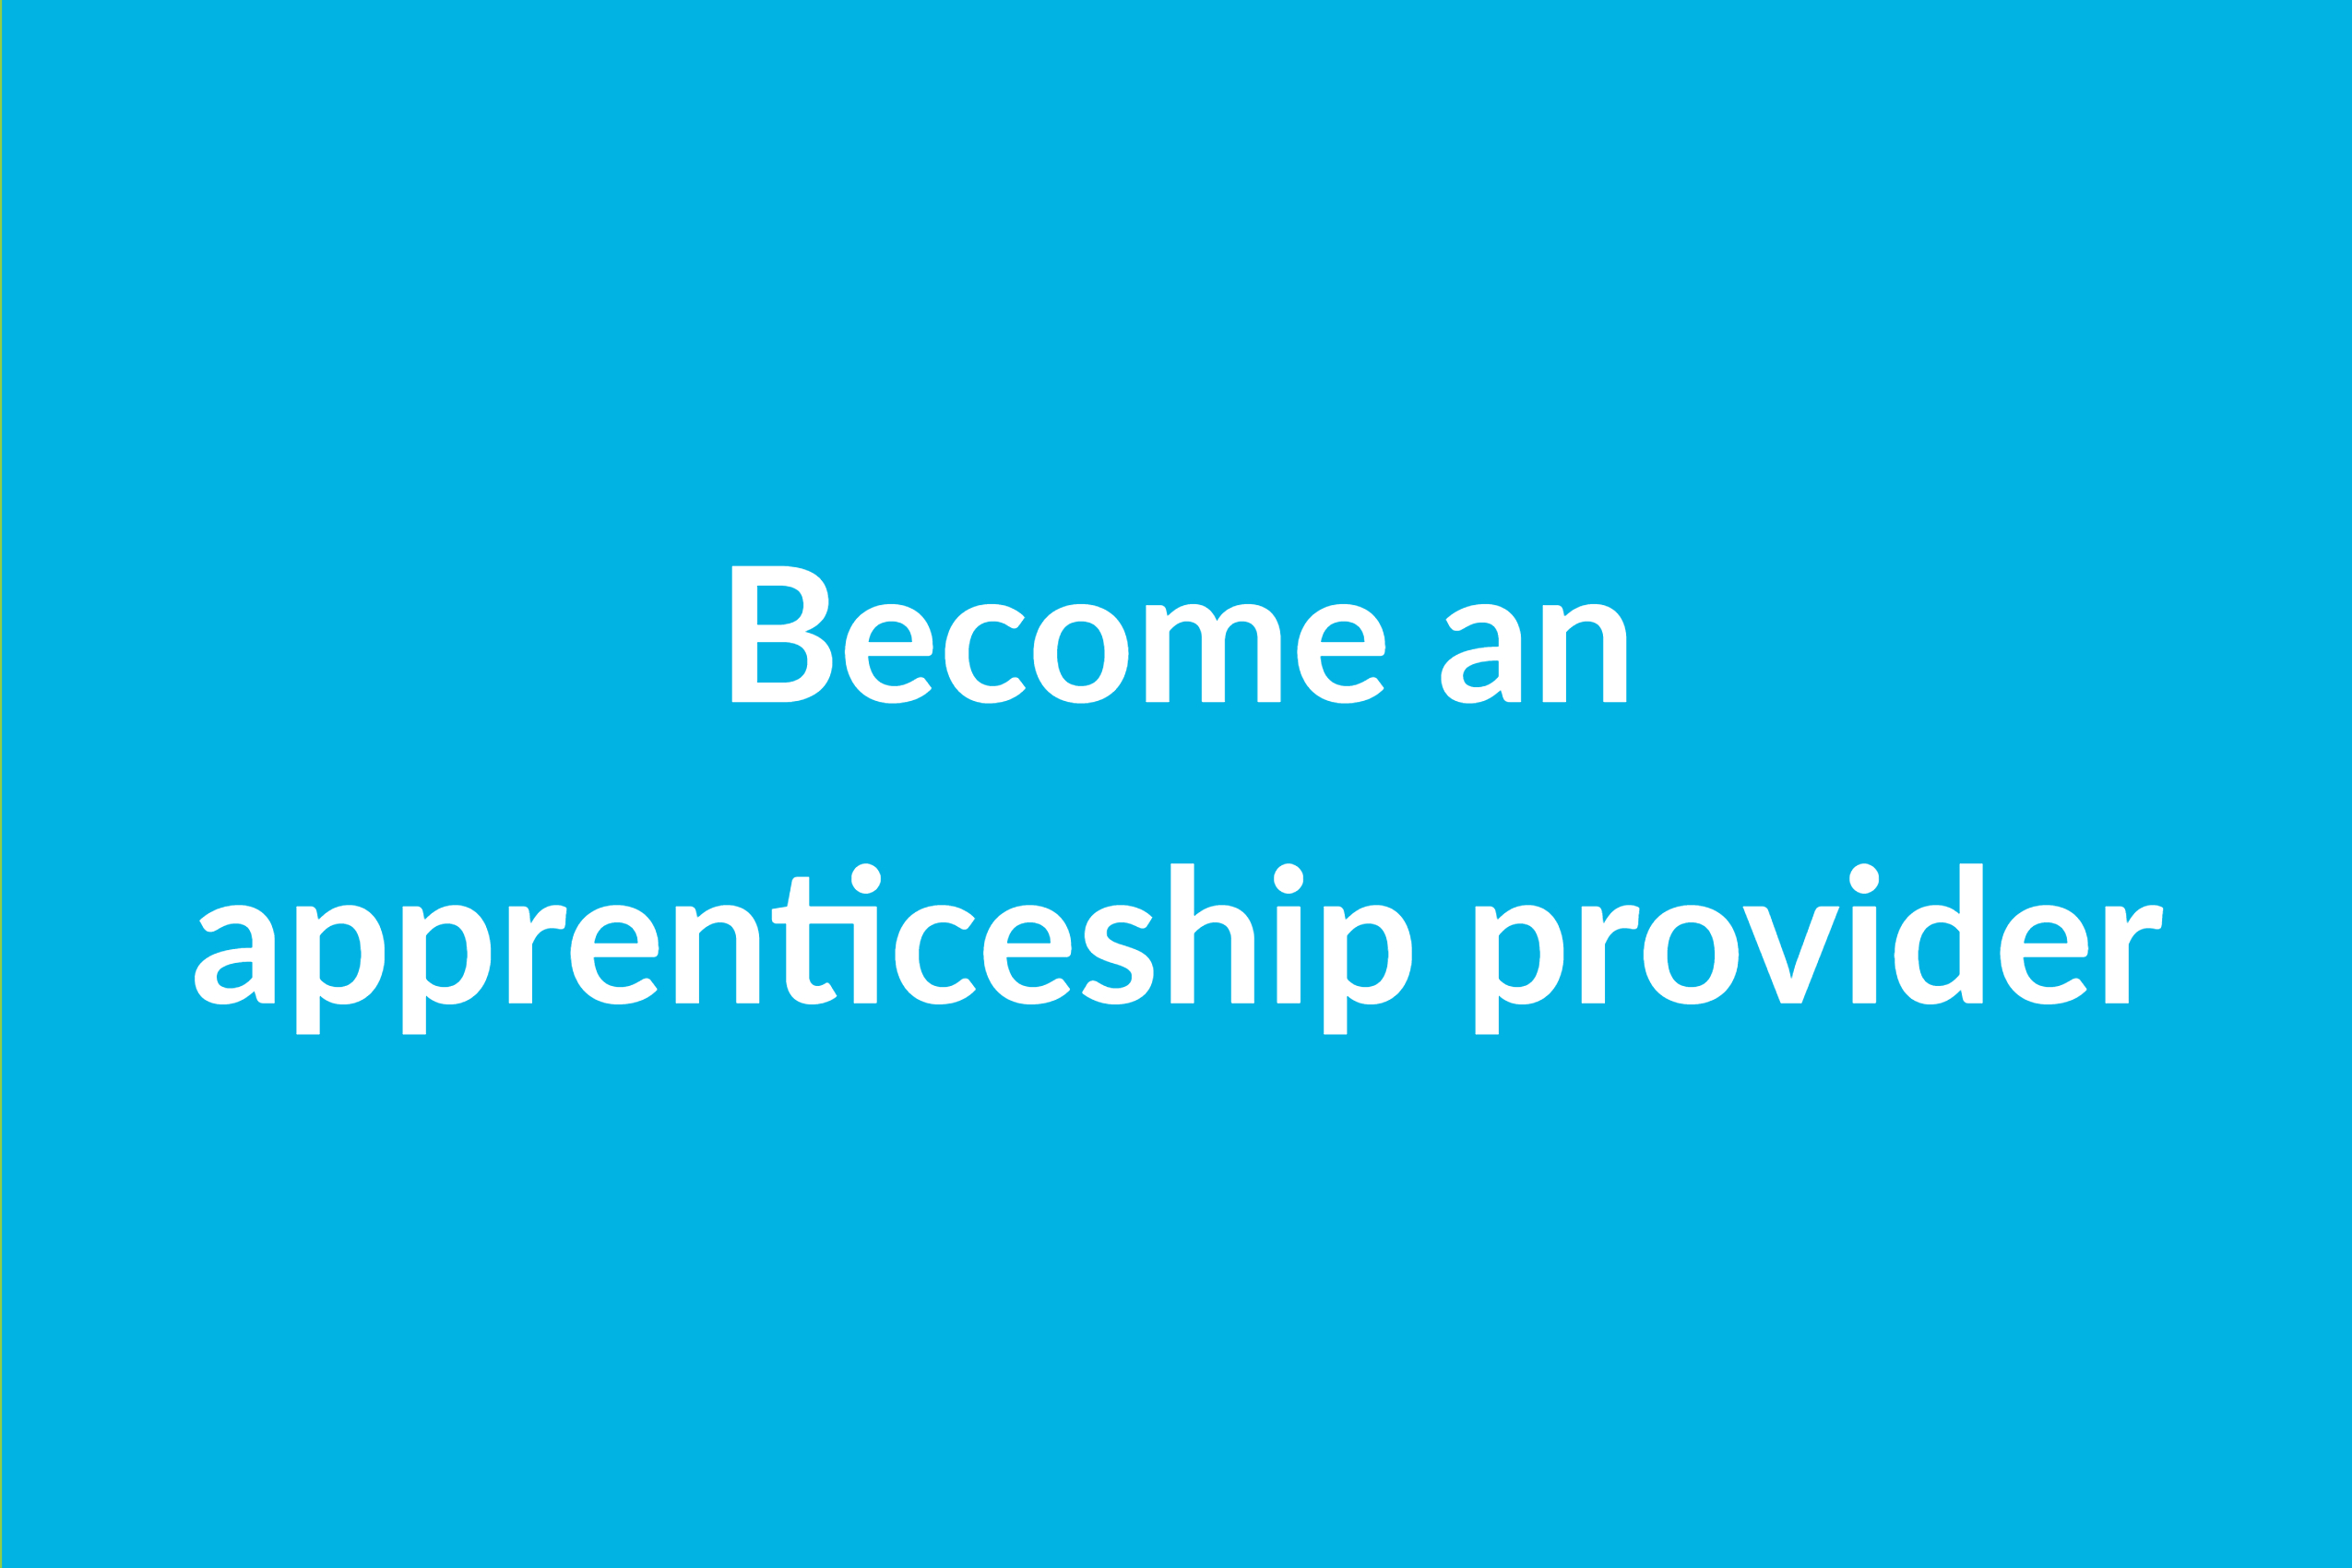 Become an apprenticeship provider